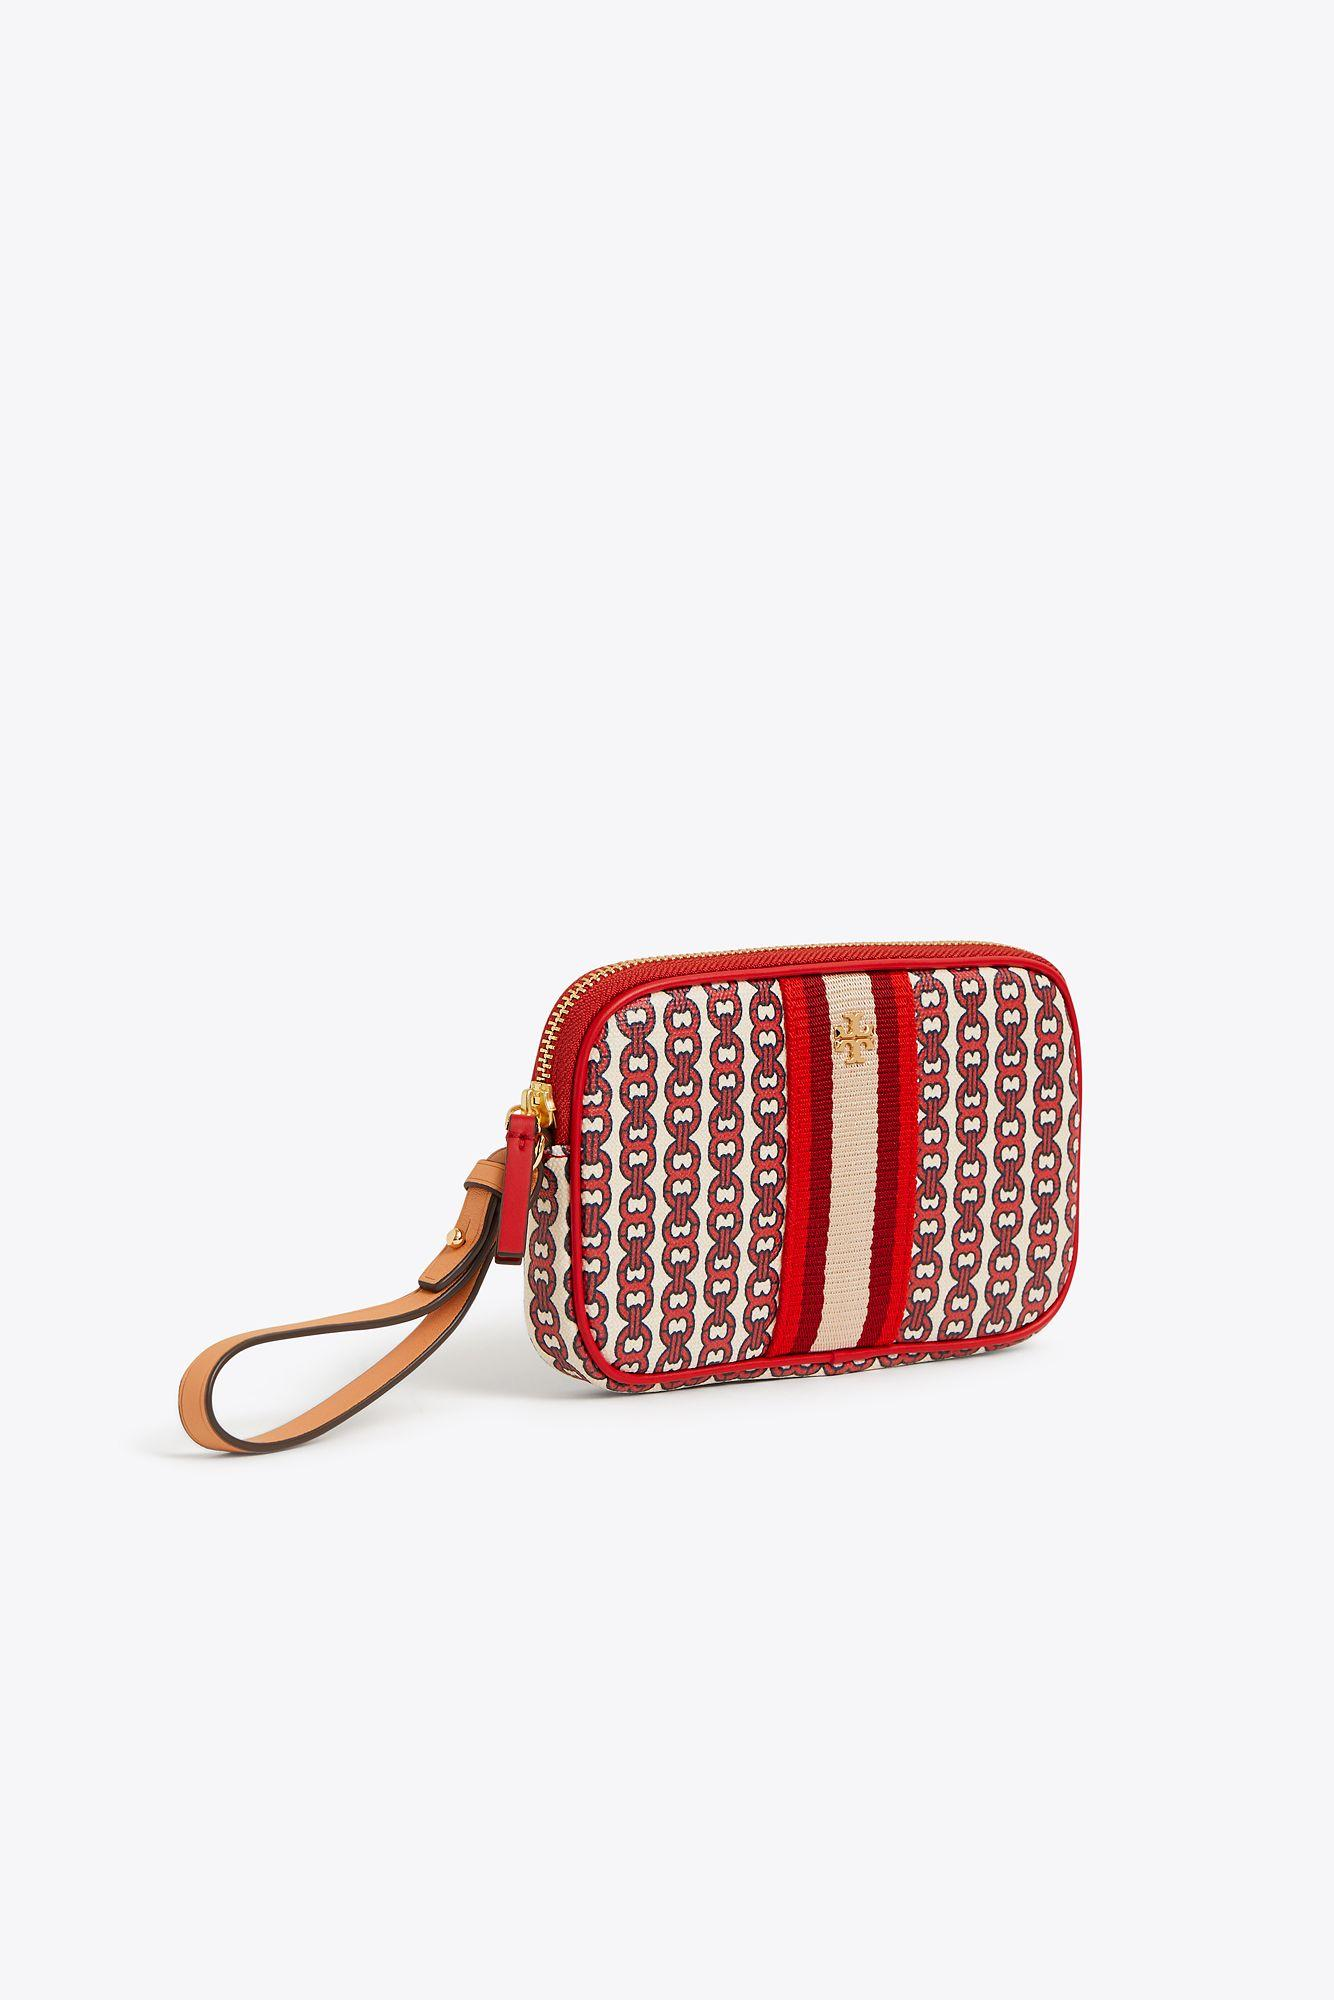 42e89df60aa8 Lyst - Tory Burch Gemini Link Canvas Wallet in Red - Save 21%